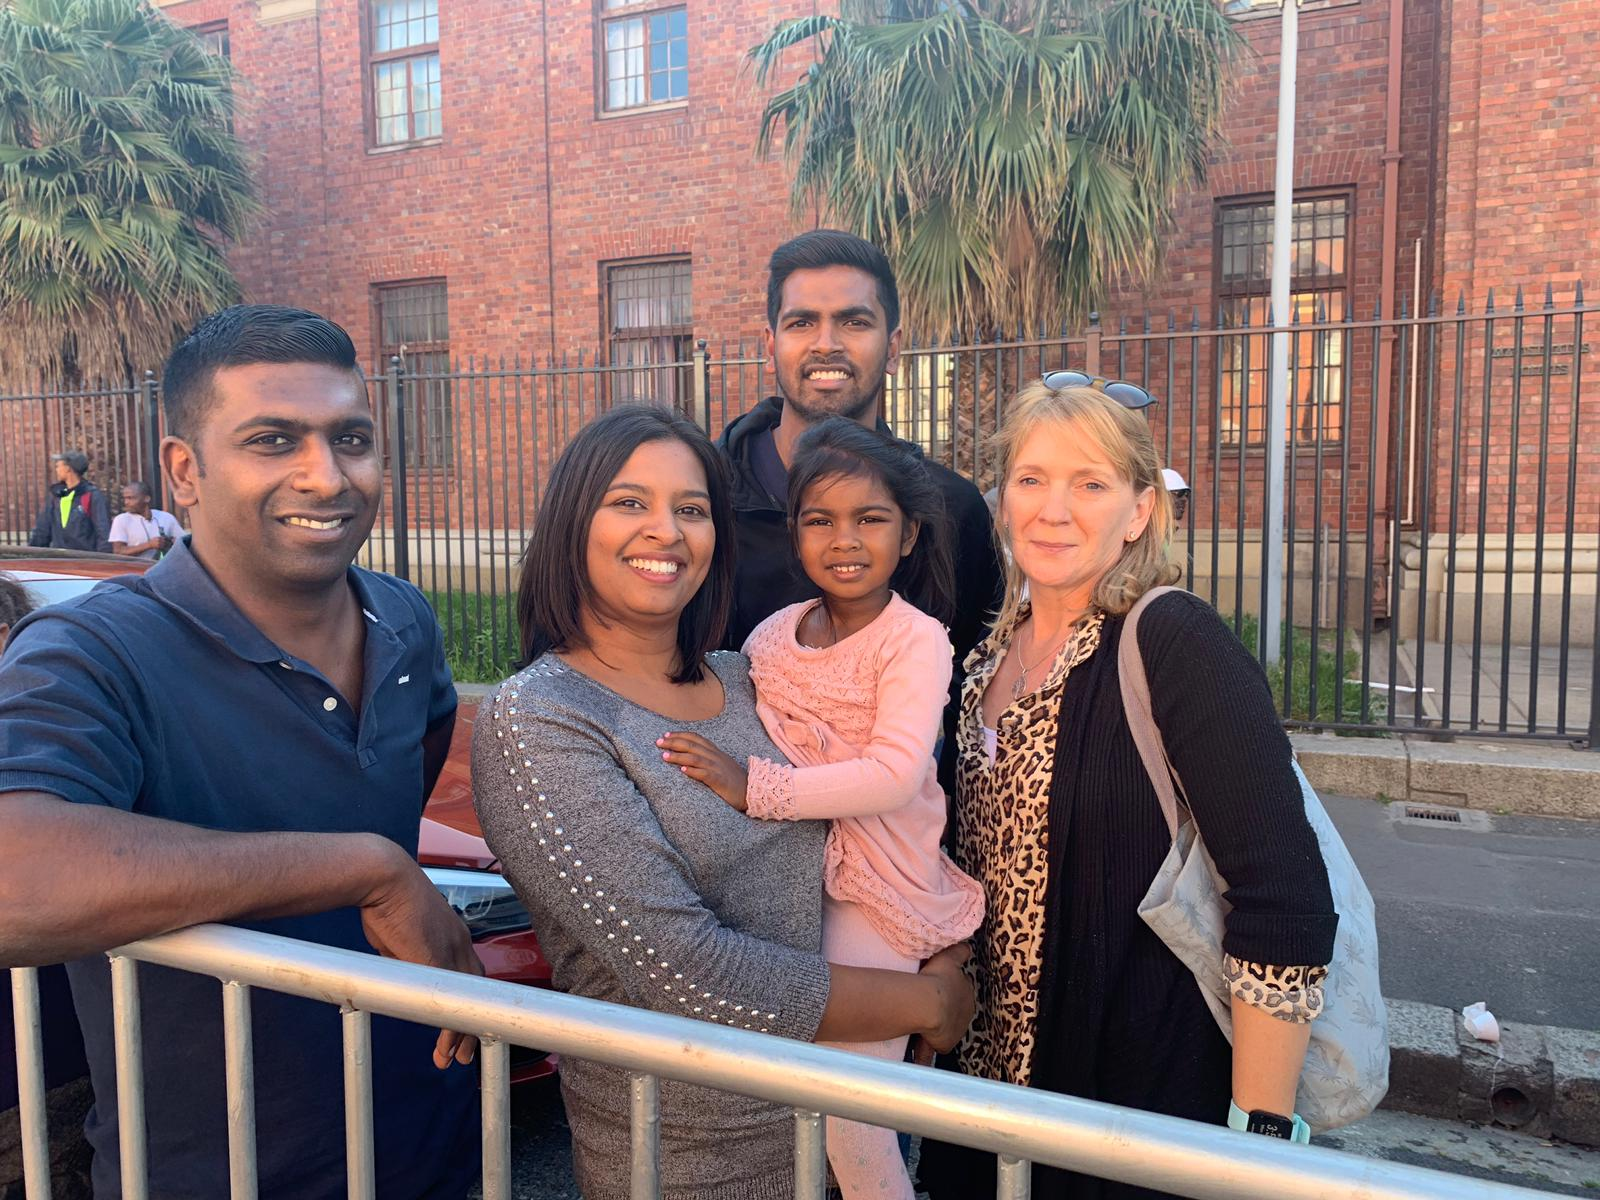 Sue Freeling, pictured far right, stands with the Roxanne Naidoo, her daughter Michaela Grace, husband Mark and family member Nigel Govindamsami.